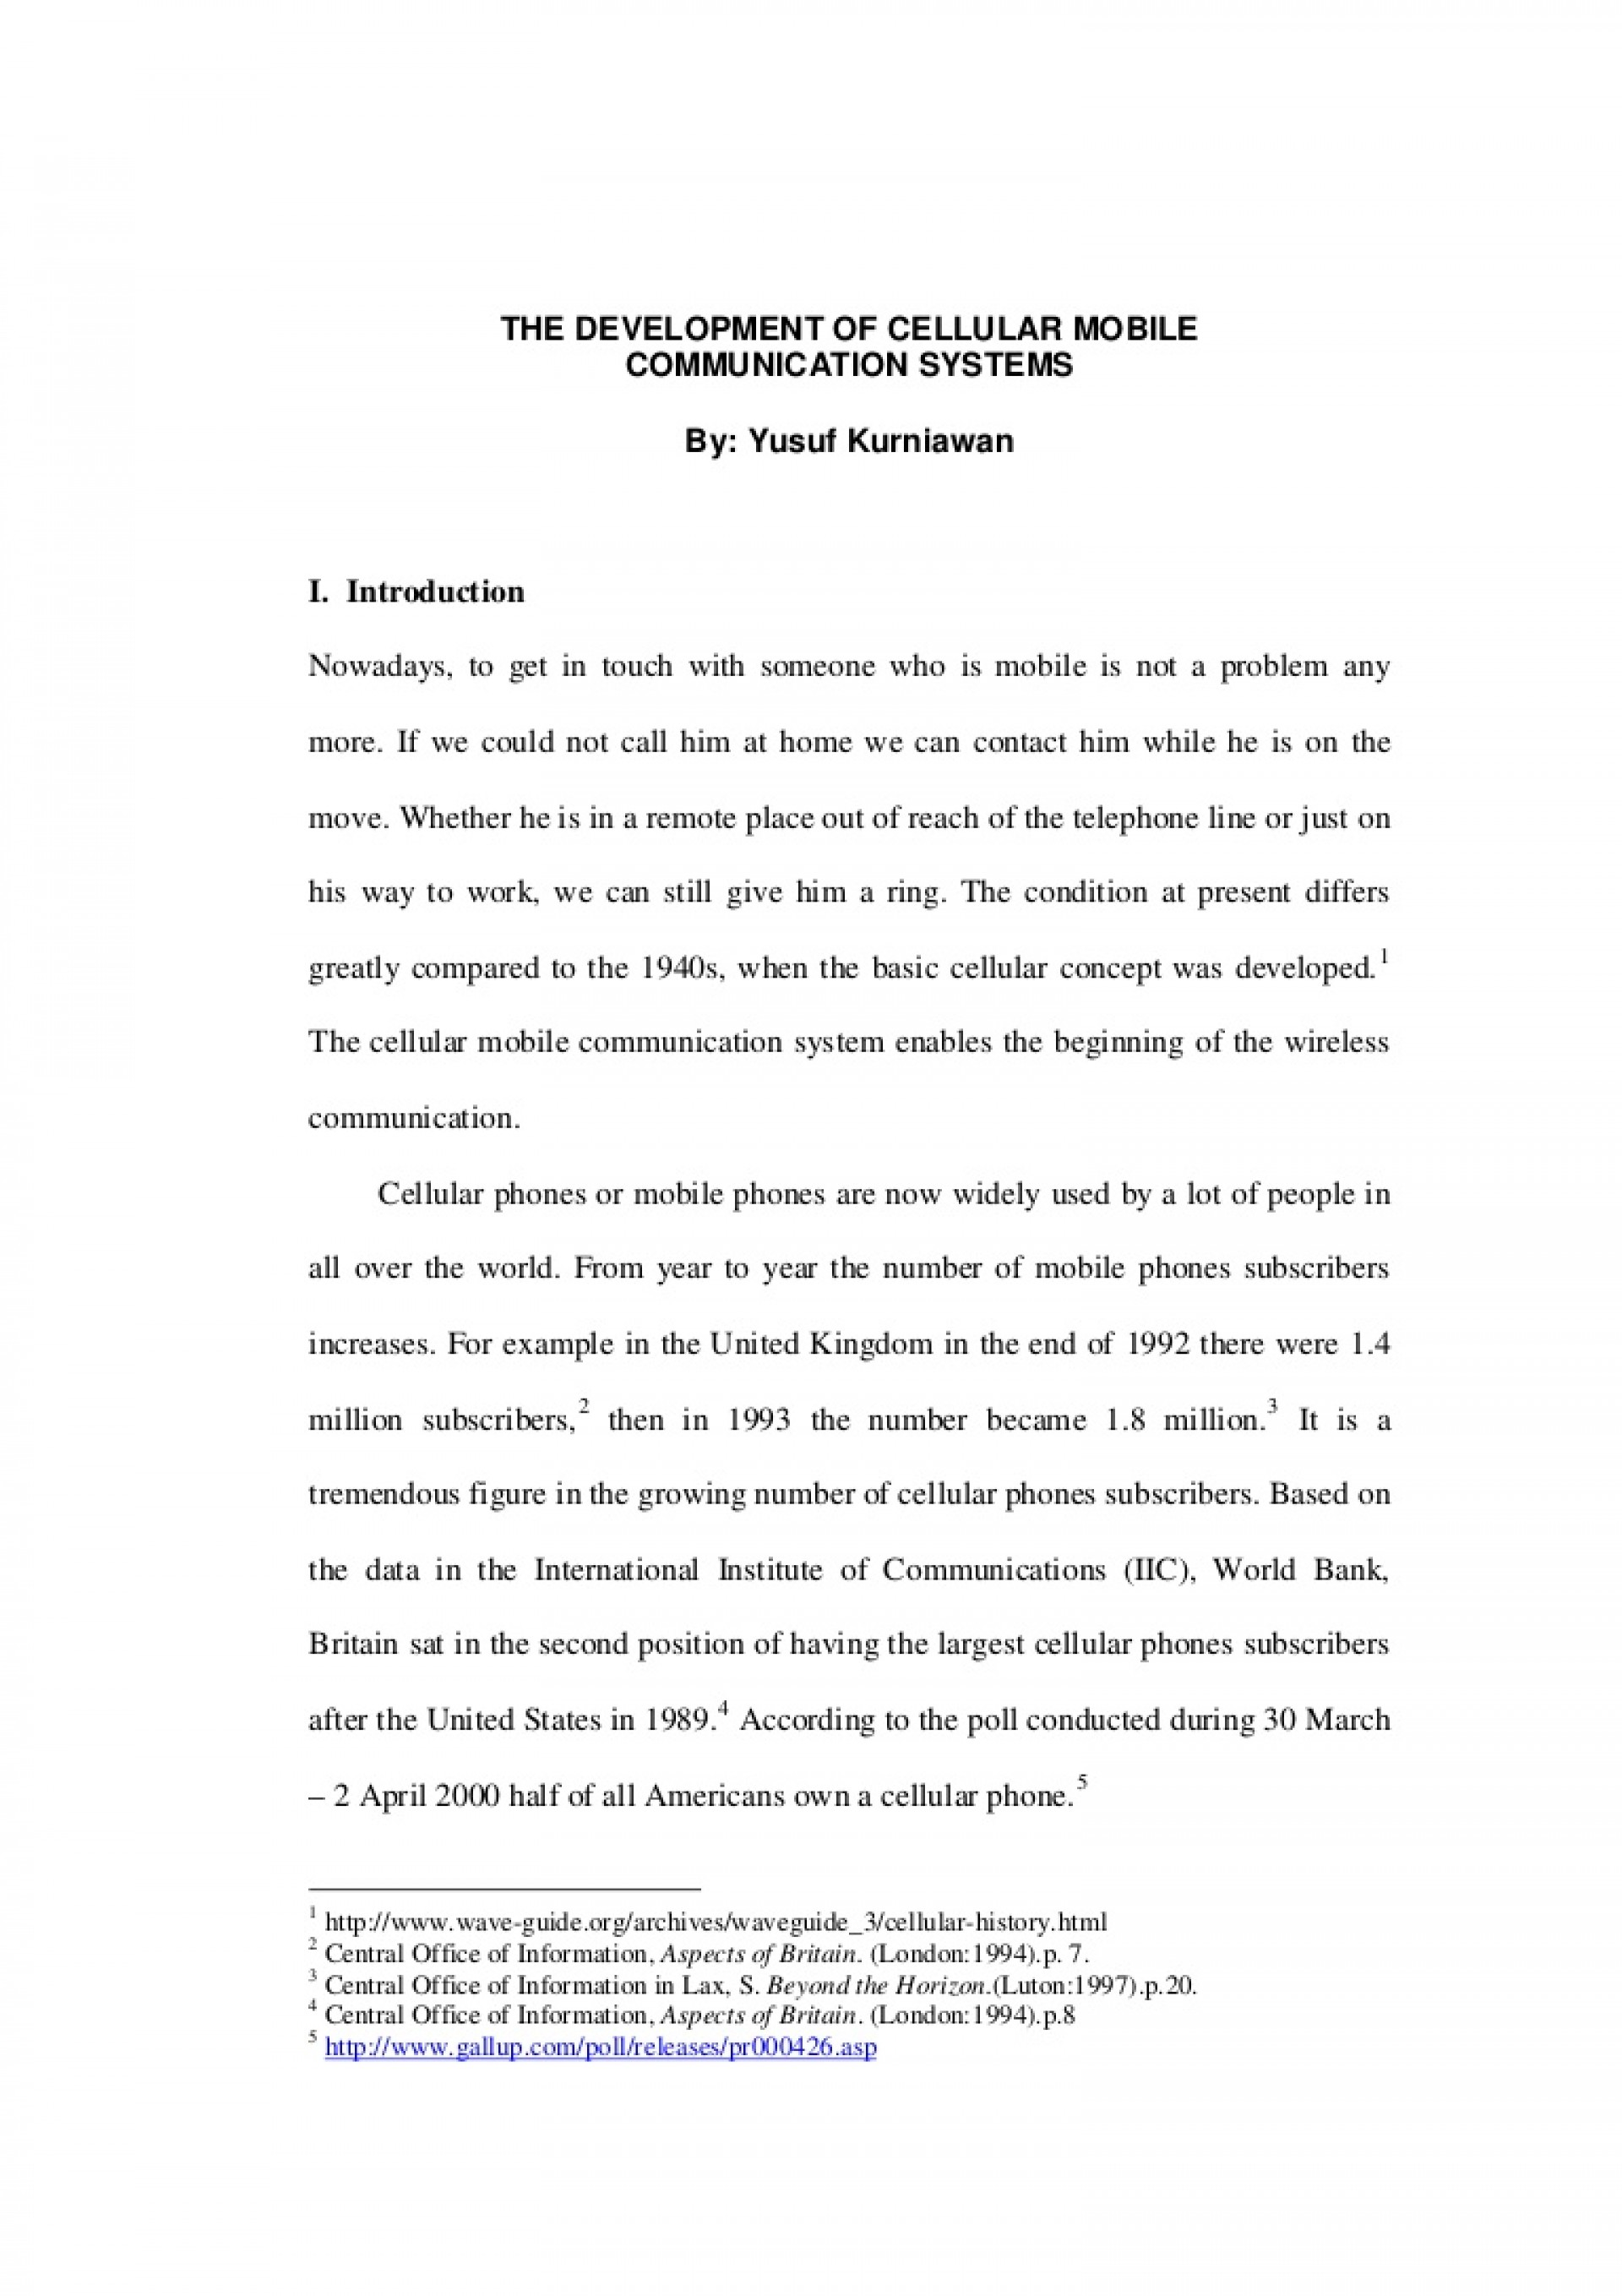 005 Cell Phoney Persuasive On Phones In School Year Round Should Cellphones Banned Argumentative Mobilephonedevelopment Phpapp01 Thumbn Allowed Not Mobile Reasons Why Impressive Phone Essay Advantages And Disadvantages Tamil Introduction Pdf Essays 1920